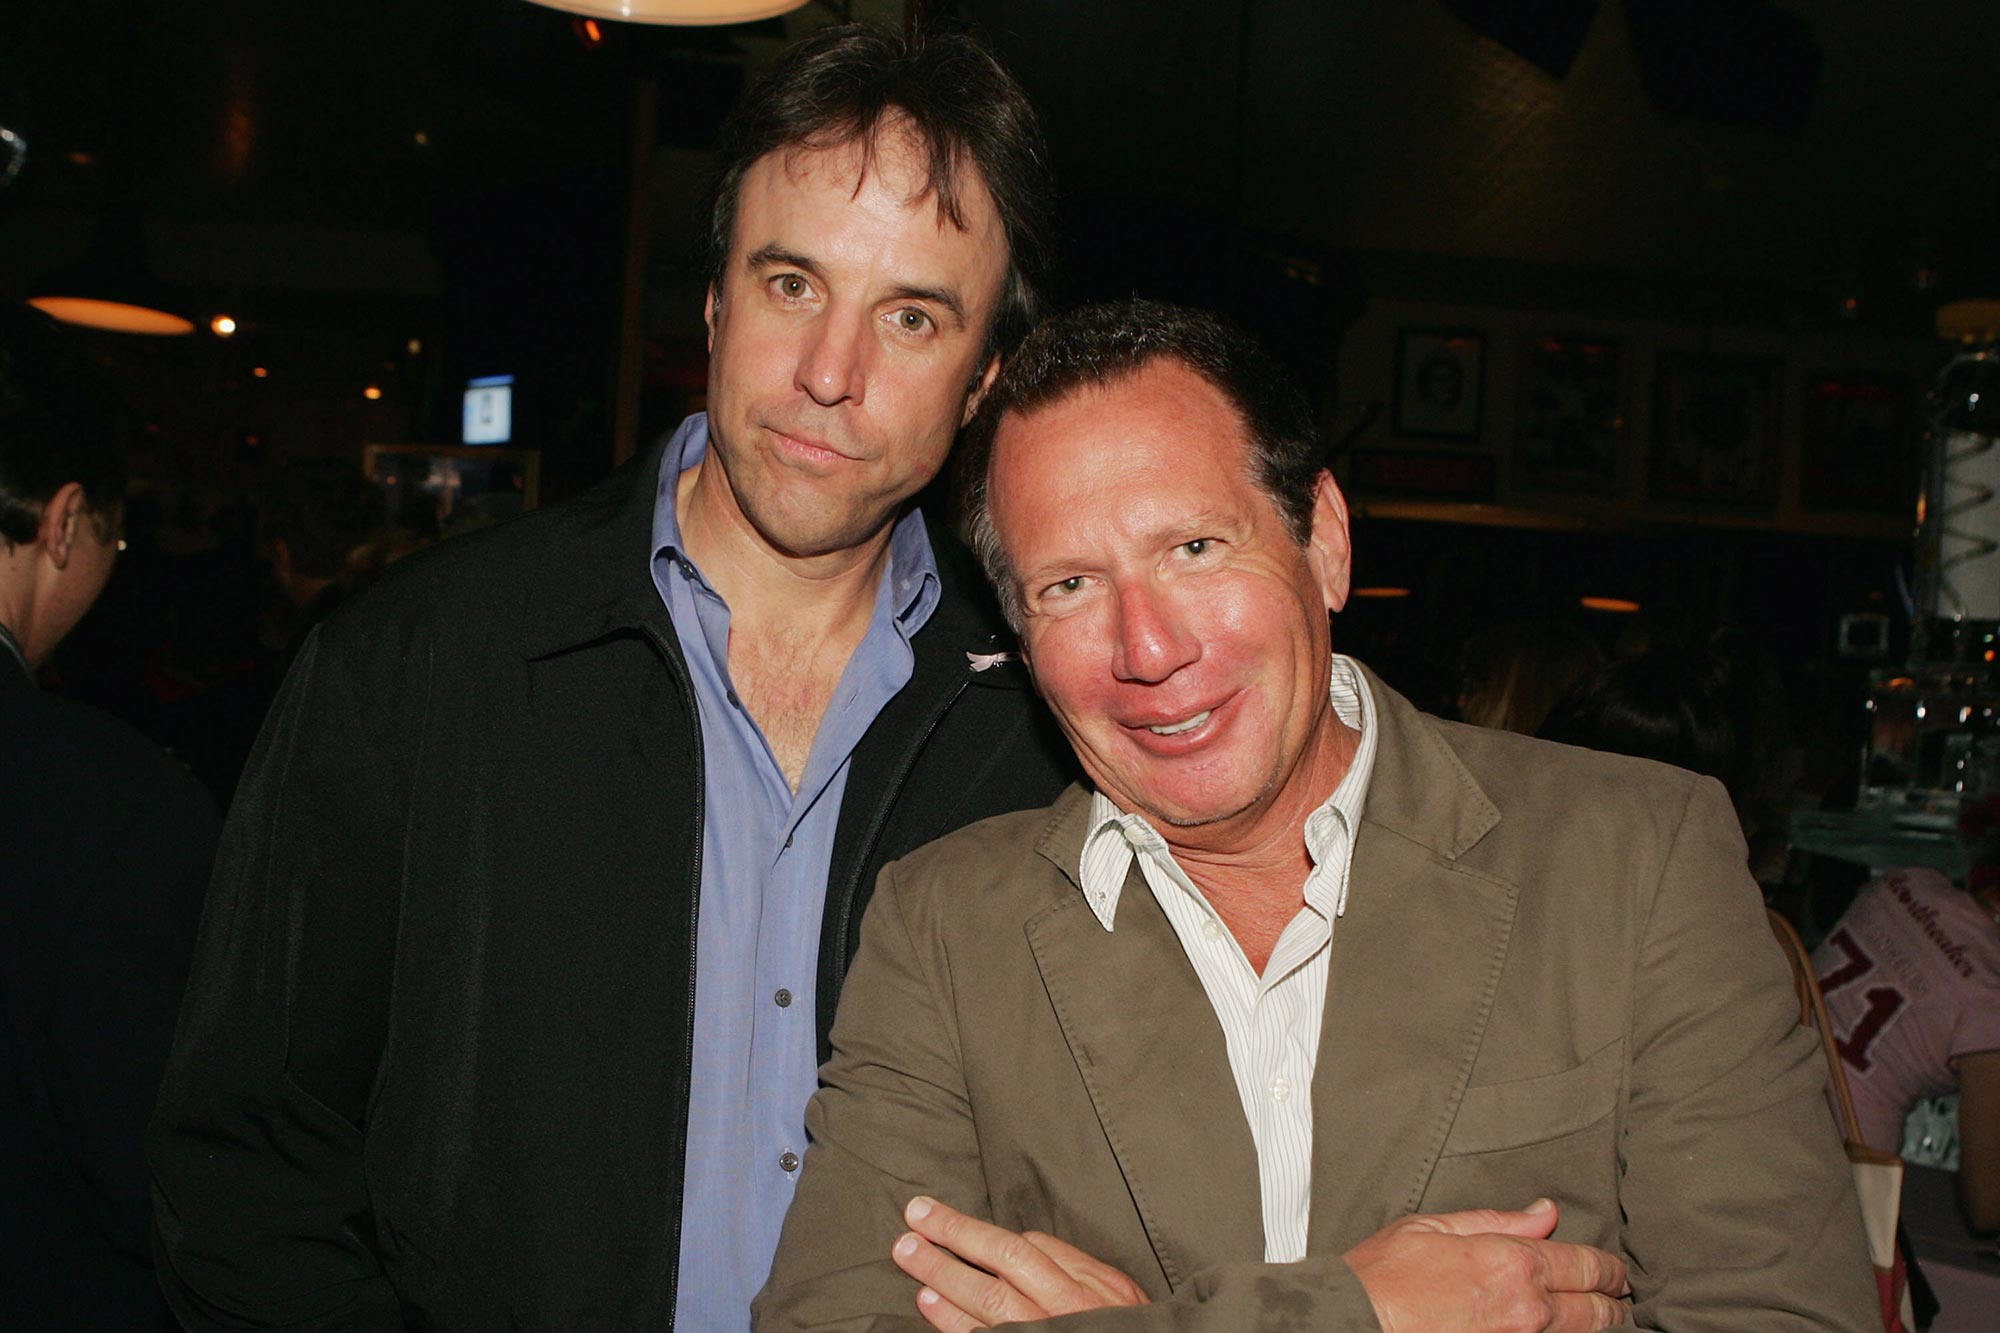 Kevin Nealon and Garry Shandling